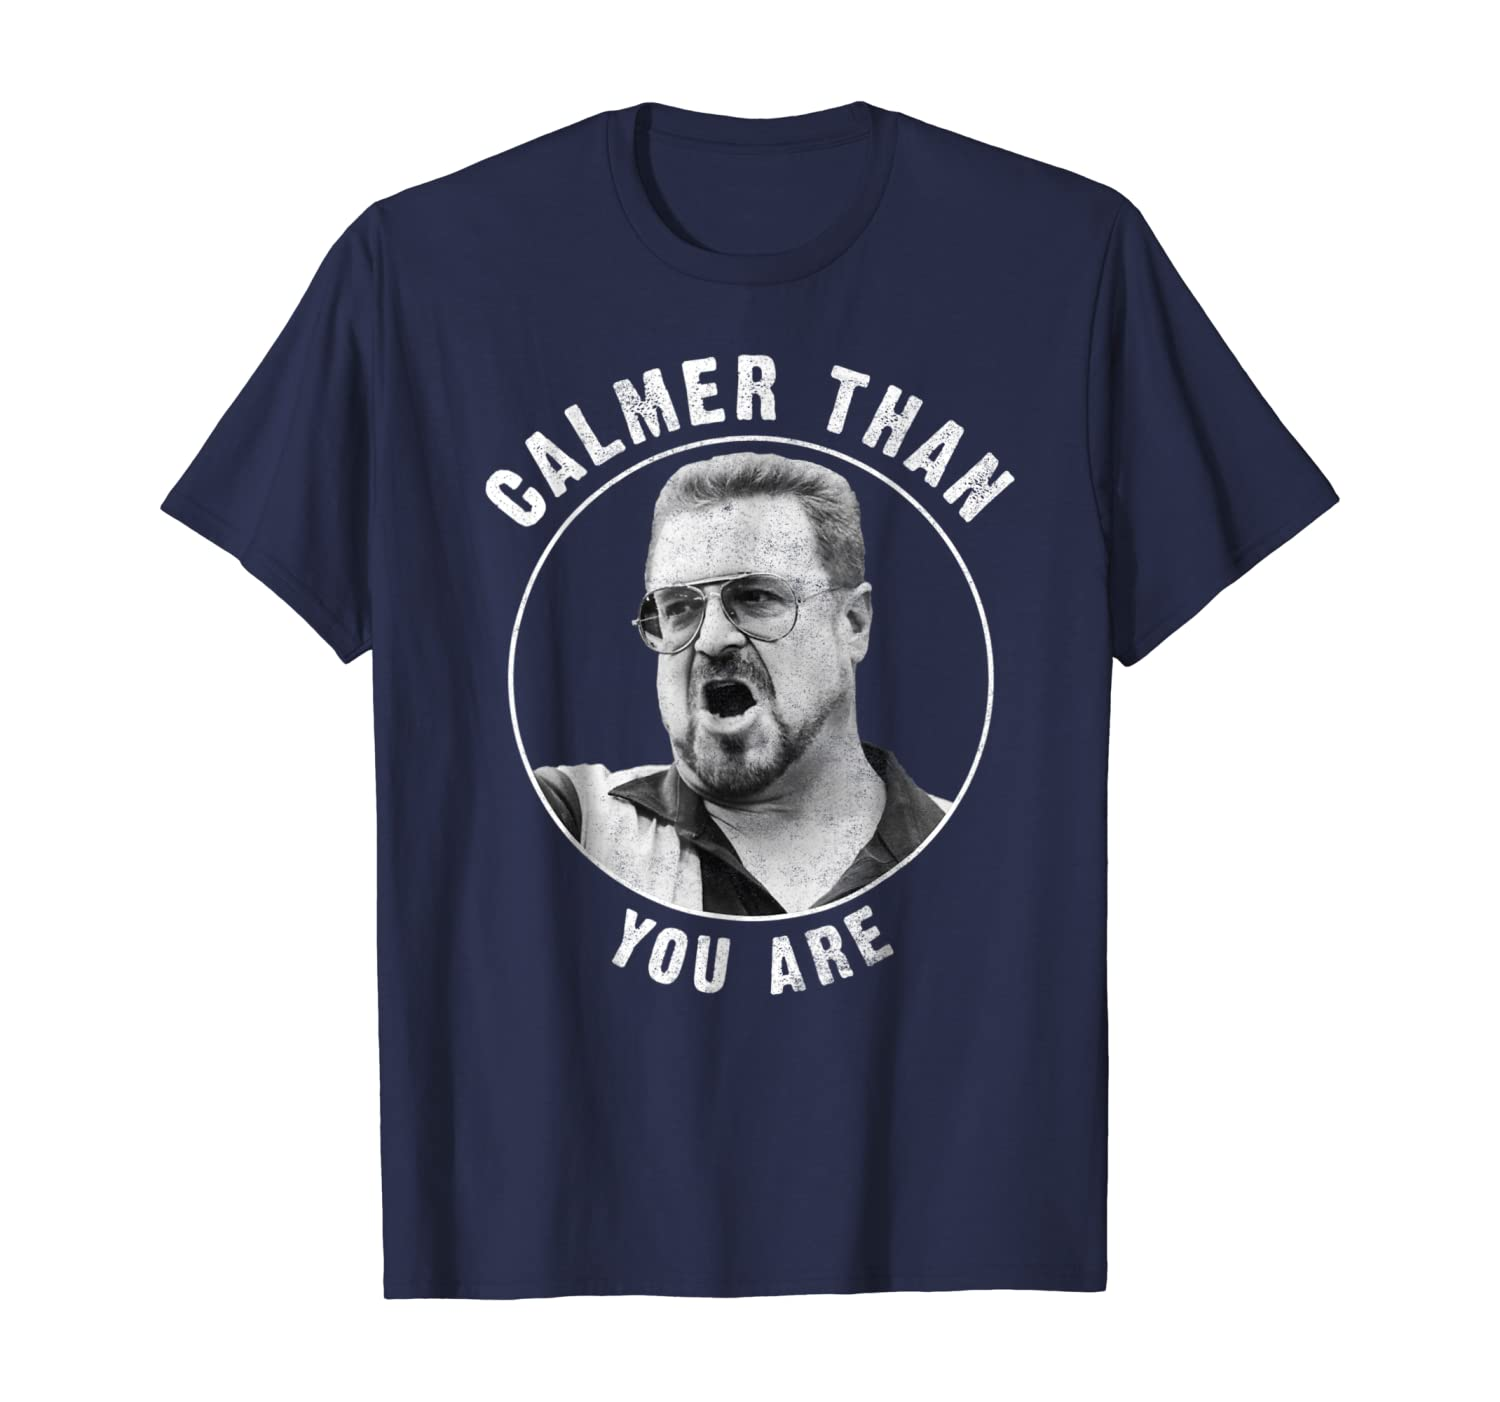 Big Lebowski Calmer Than You Are Graphic T-Shirt